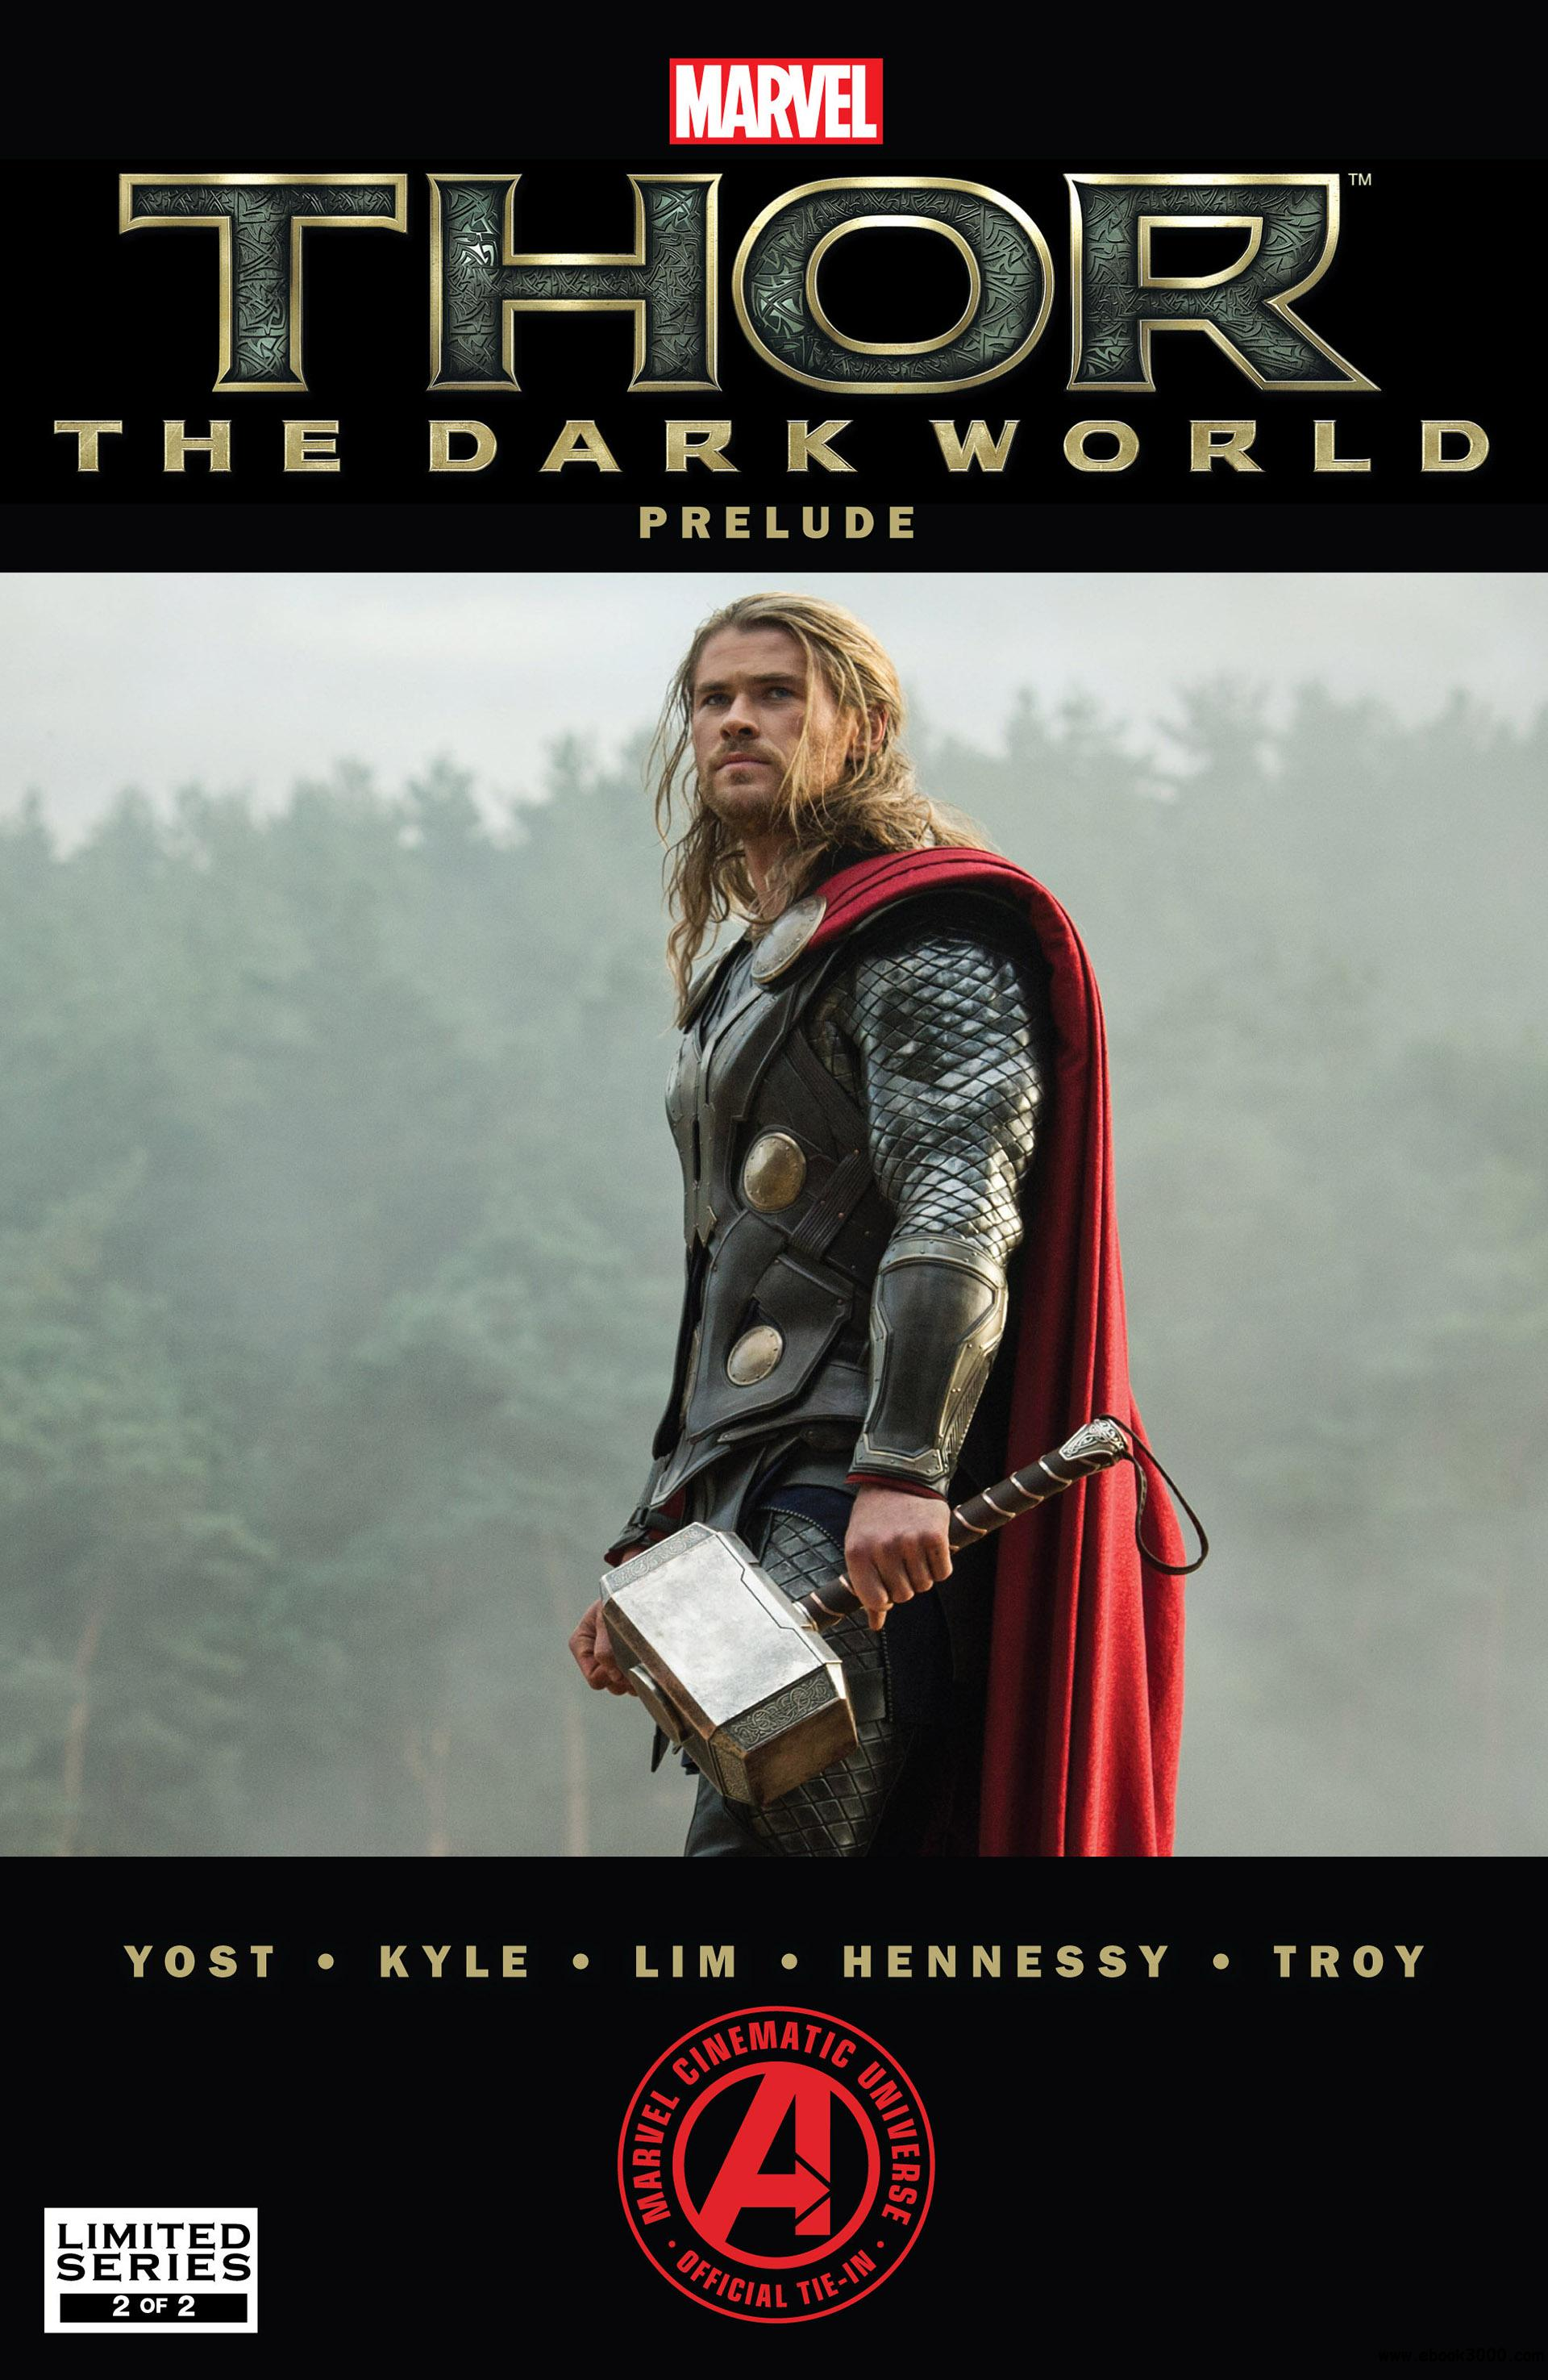 Marvel's Thor - The Dark World Prelude 002 (2013) free download